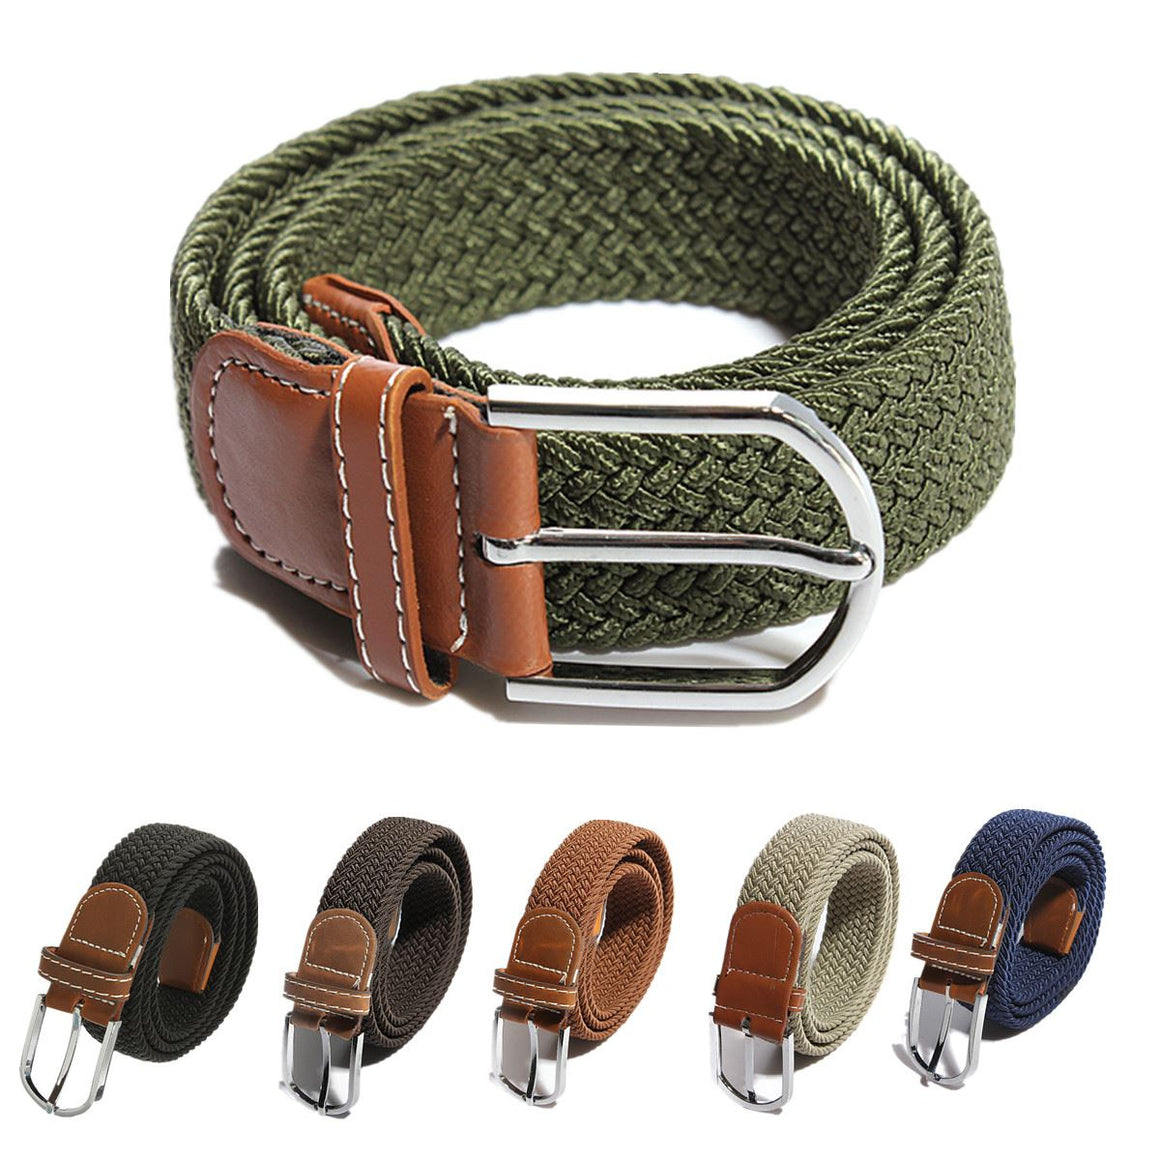 Fashion Unisex Men Women Casual Strech Braided Elastic Fur Leather Buckle Belt High Quality Belts 16 Colors p3836Buy mate